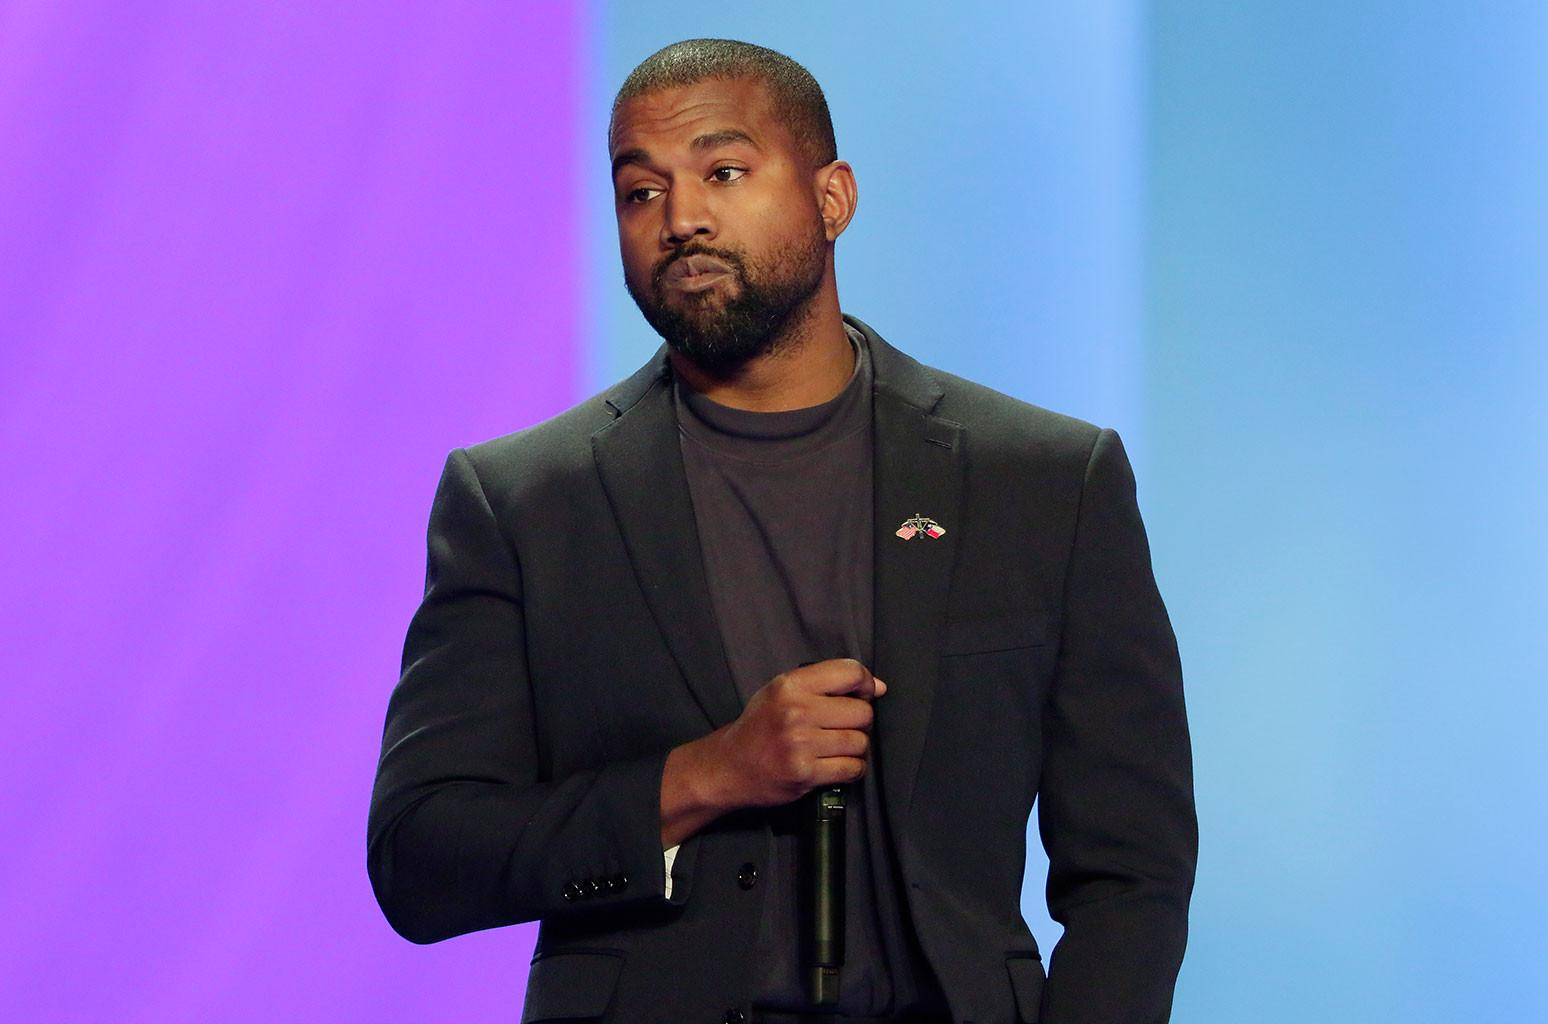 KUWTK: Kanye West Reportedly Wants To Take The Kids To A Compound In The Desert - Here's How Kim Feels About It!